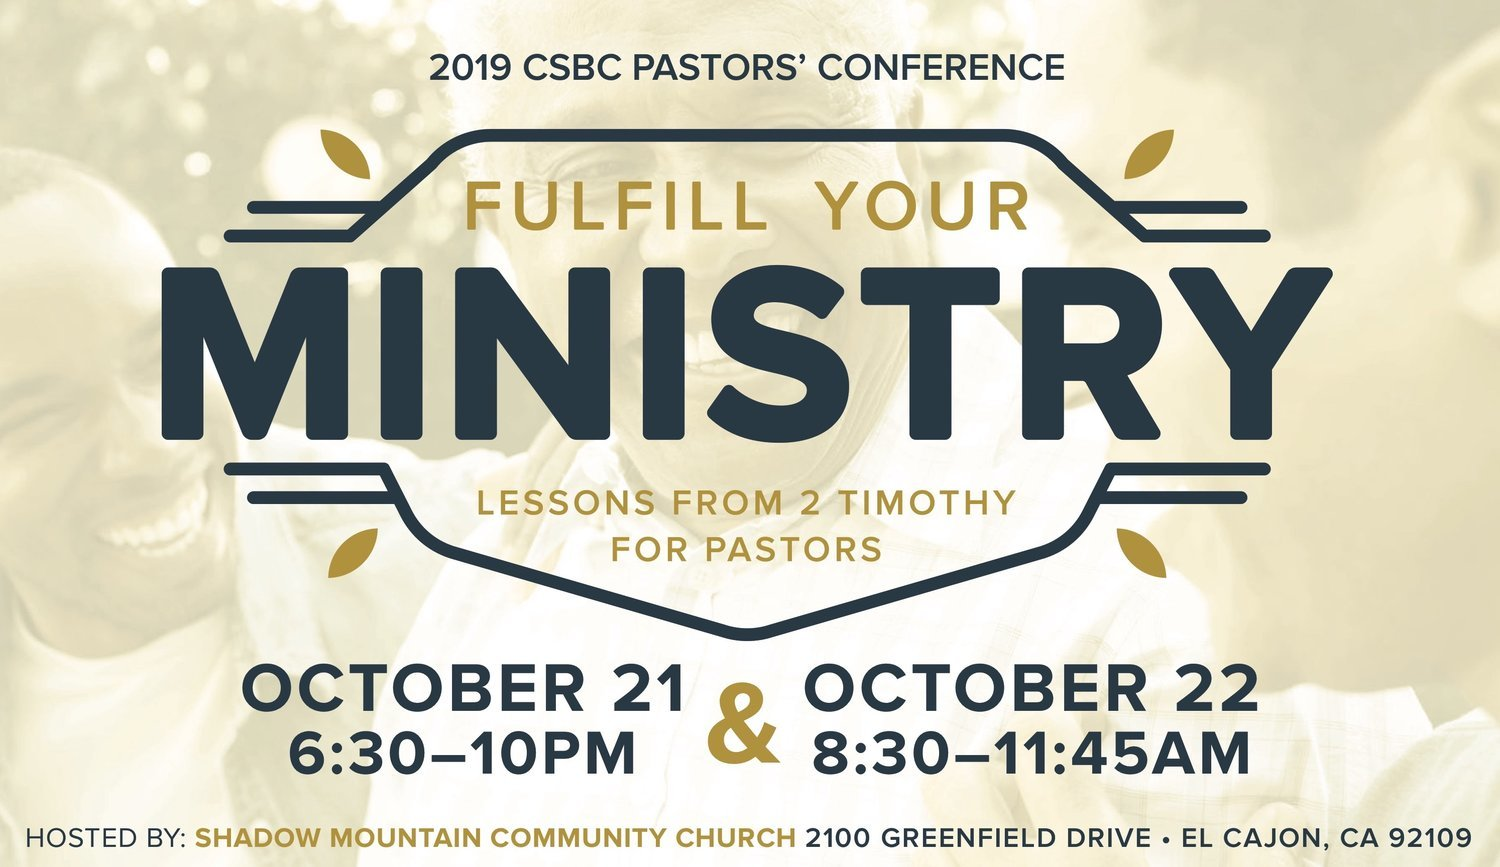 Pastors' Conference - California Southern Baptist Convention